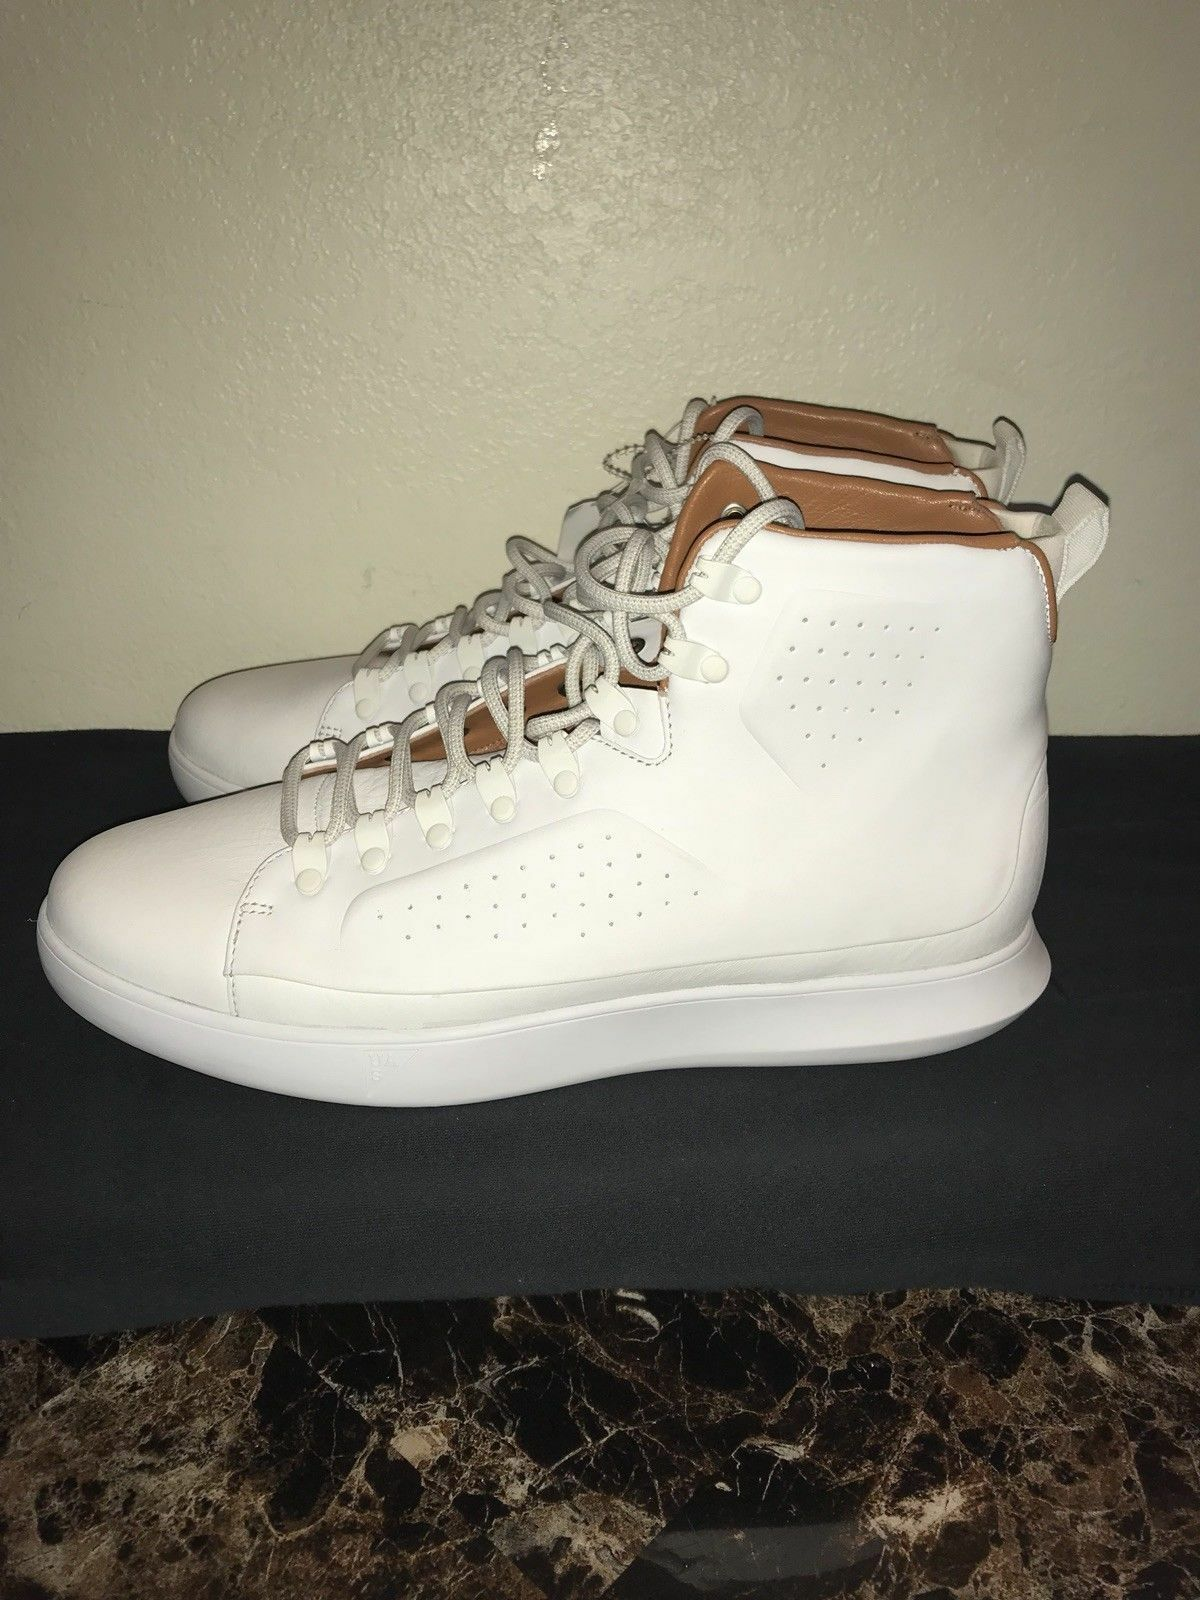 Under Armour hommes ´s Clasisic Leather Sneaker blanc/gum Dead Stock SIZE 11.5,NEW